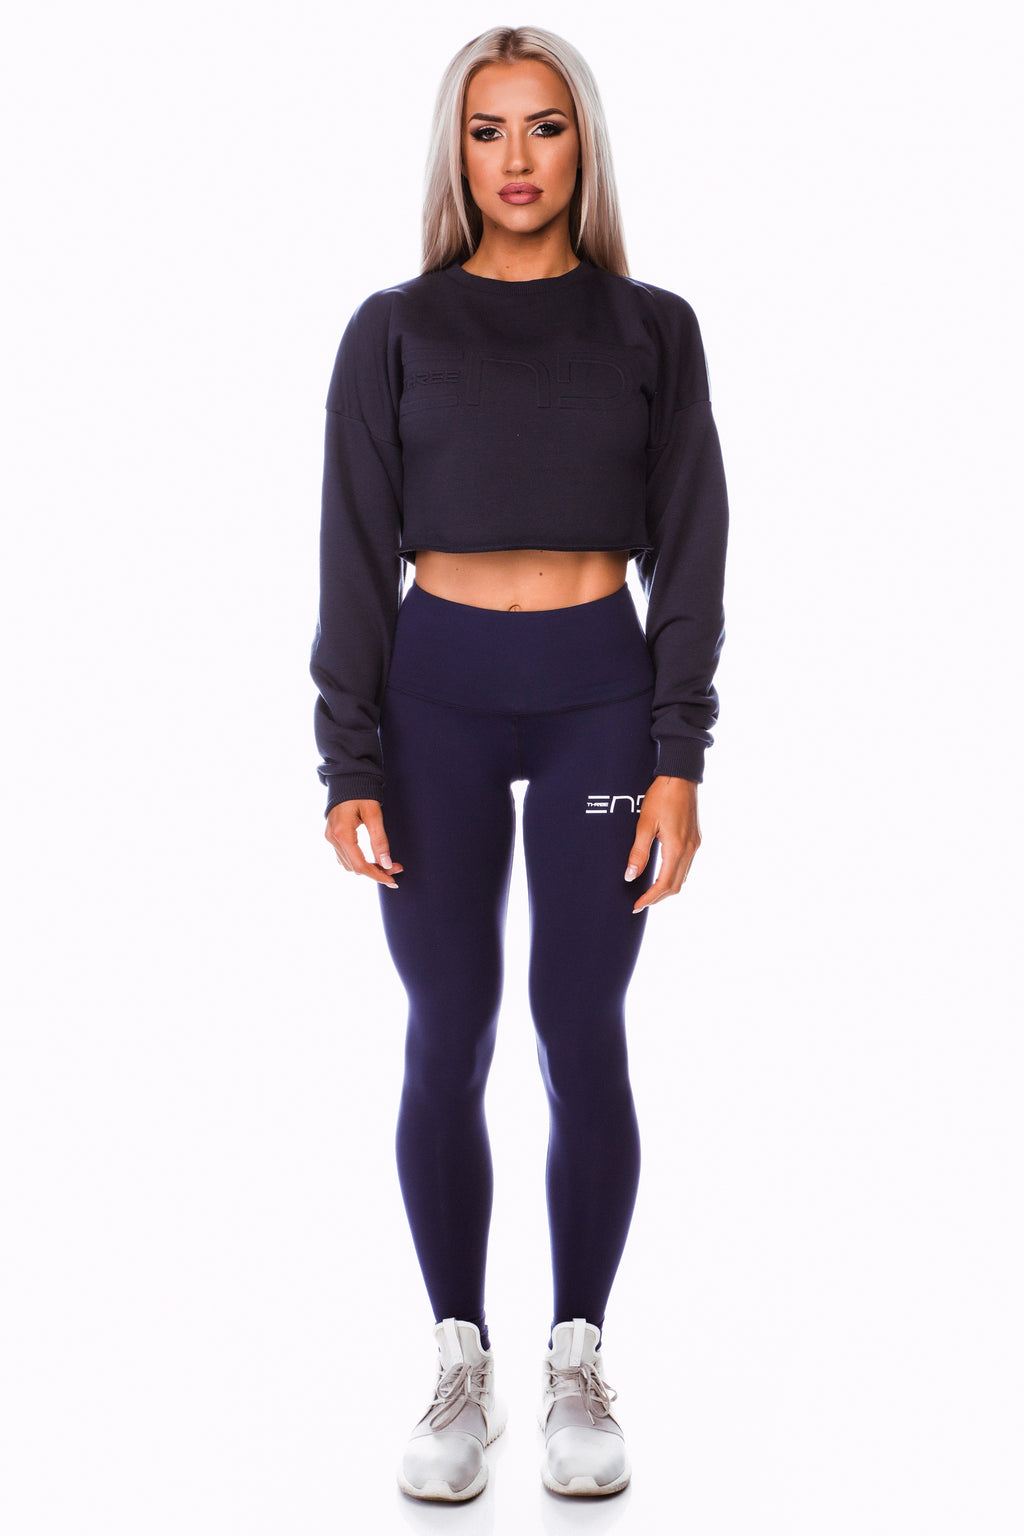 SHORTY CROP JUMPER - NAVY